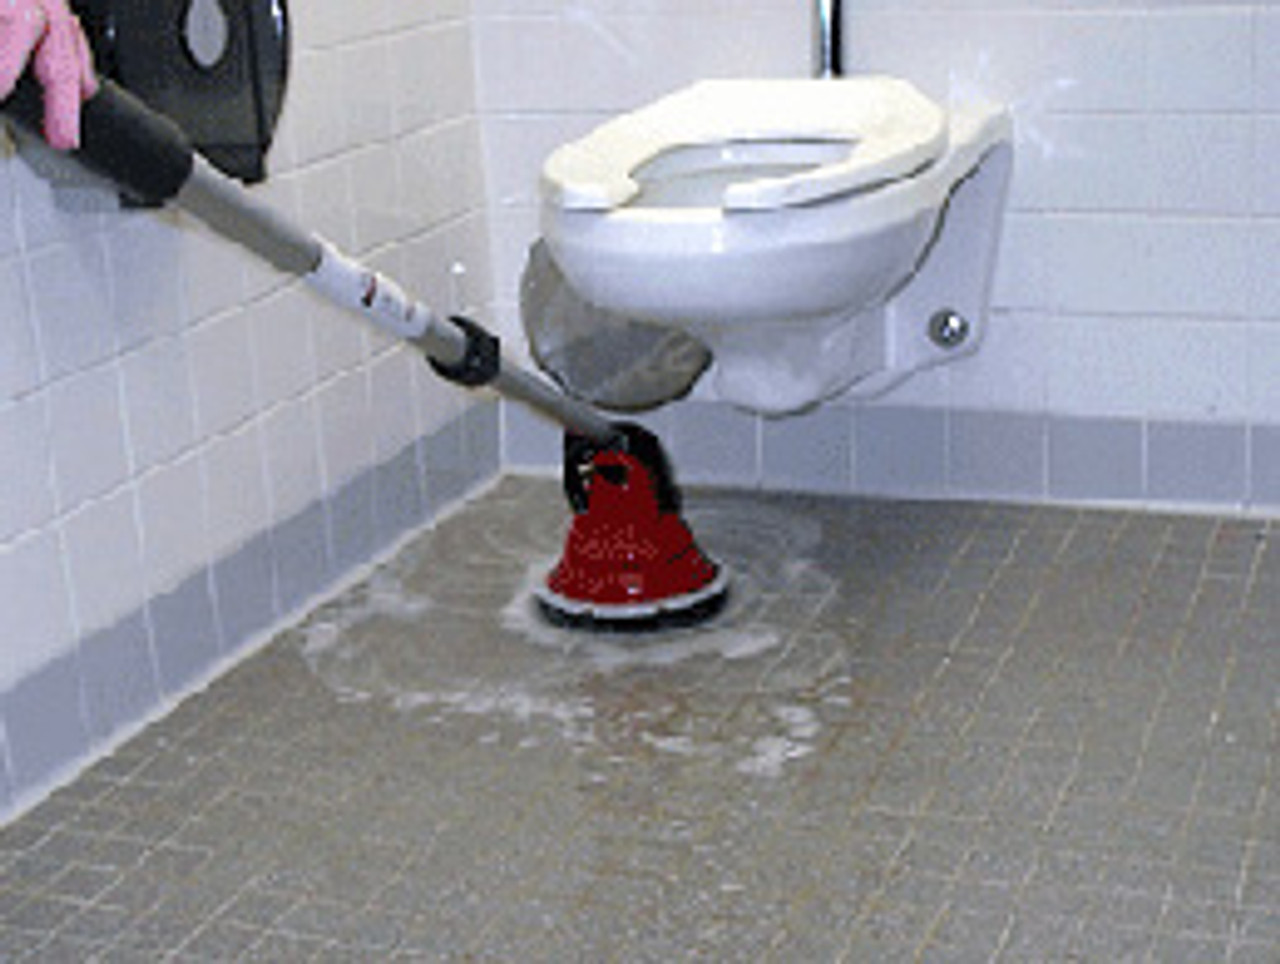 Clean under toilets and other hard to reach places without getting down on your hands and knees.